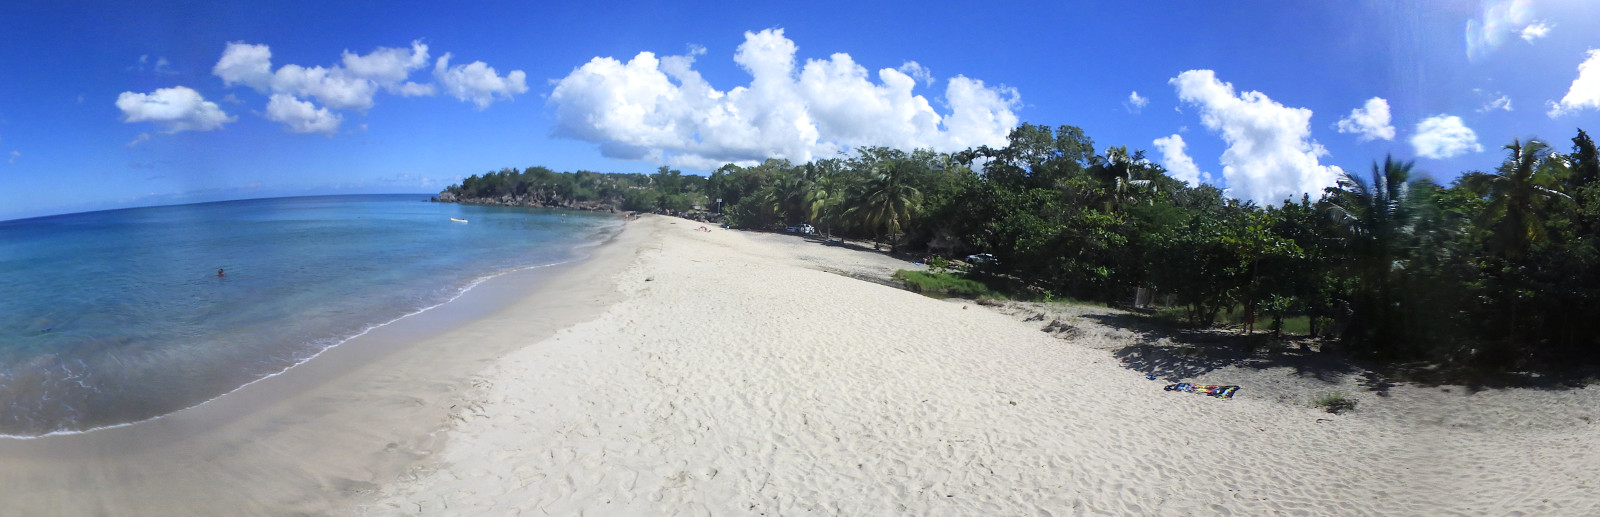 Photo 360 Guadeloupe leroux